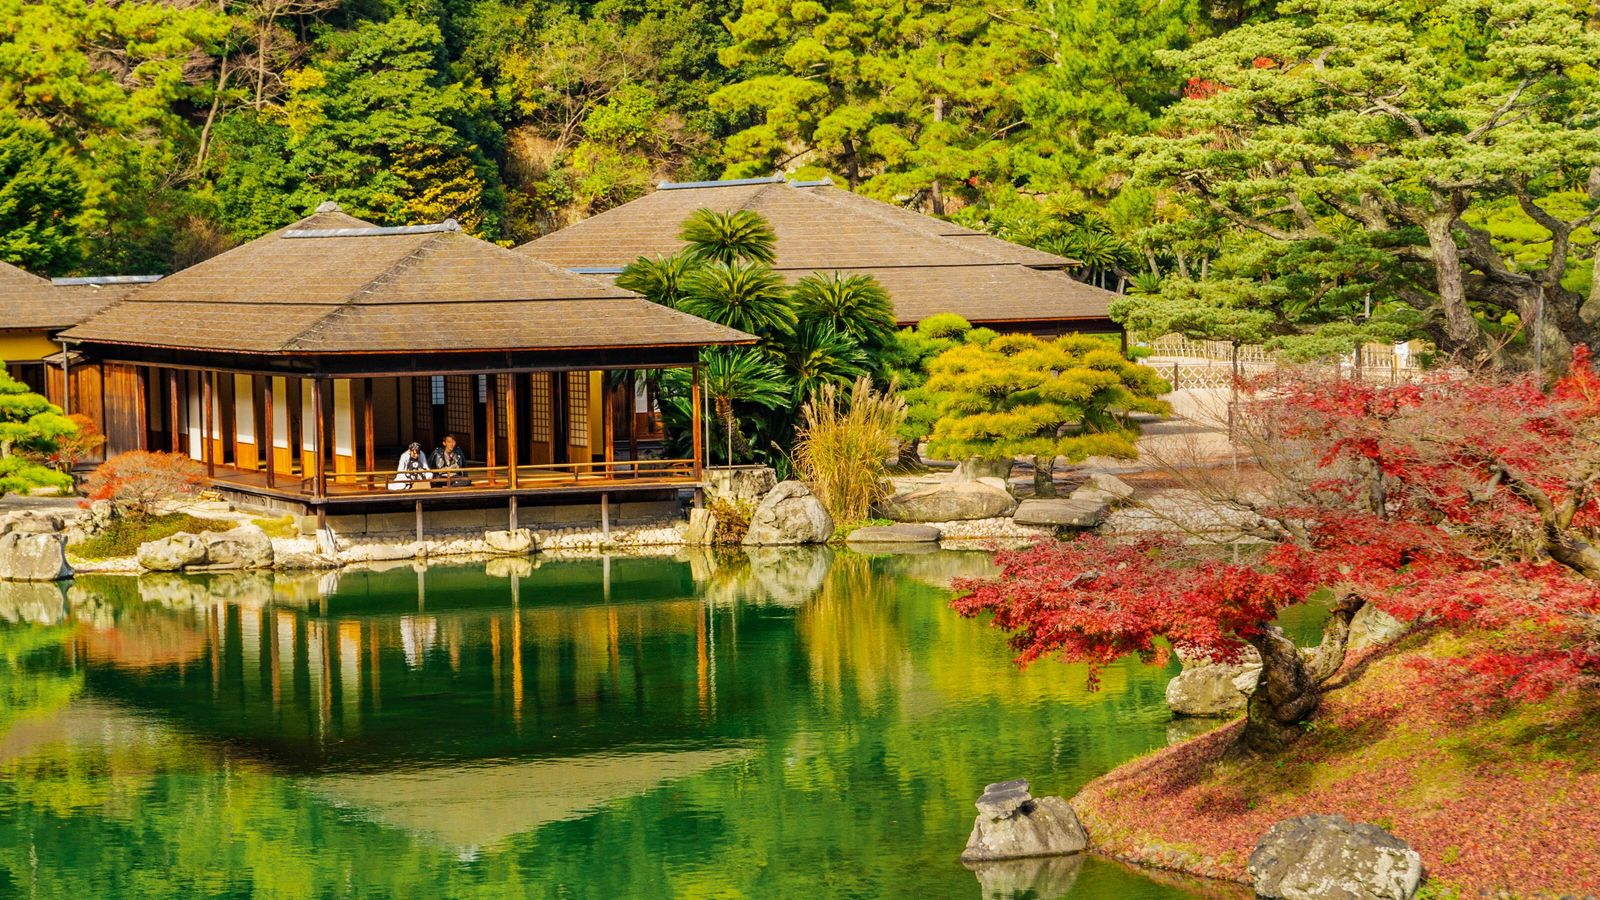 Ritsurin Garden, in the city of Takamatsu, is one of Japan's most beloved temples.